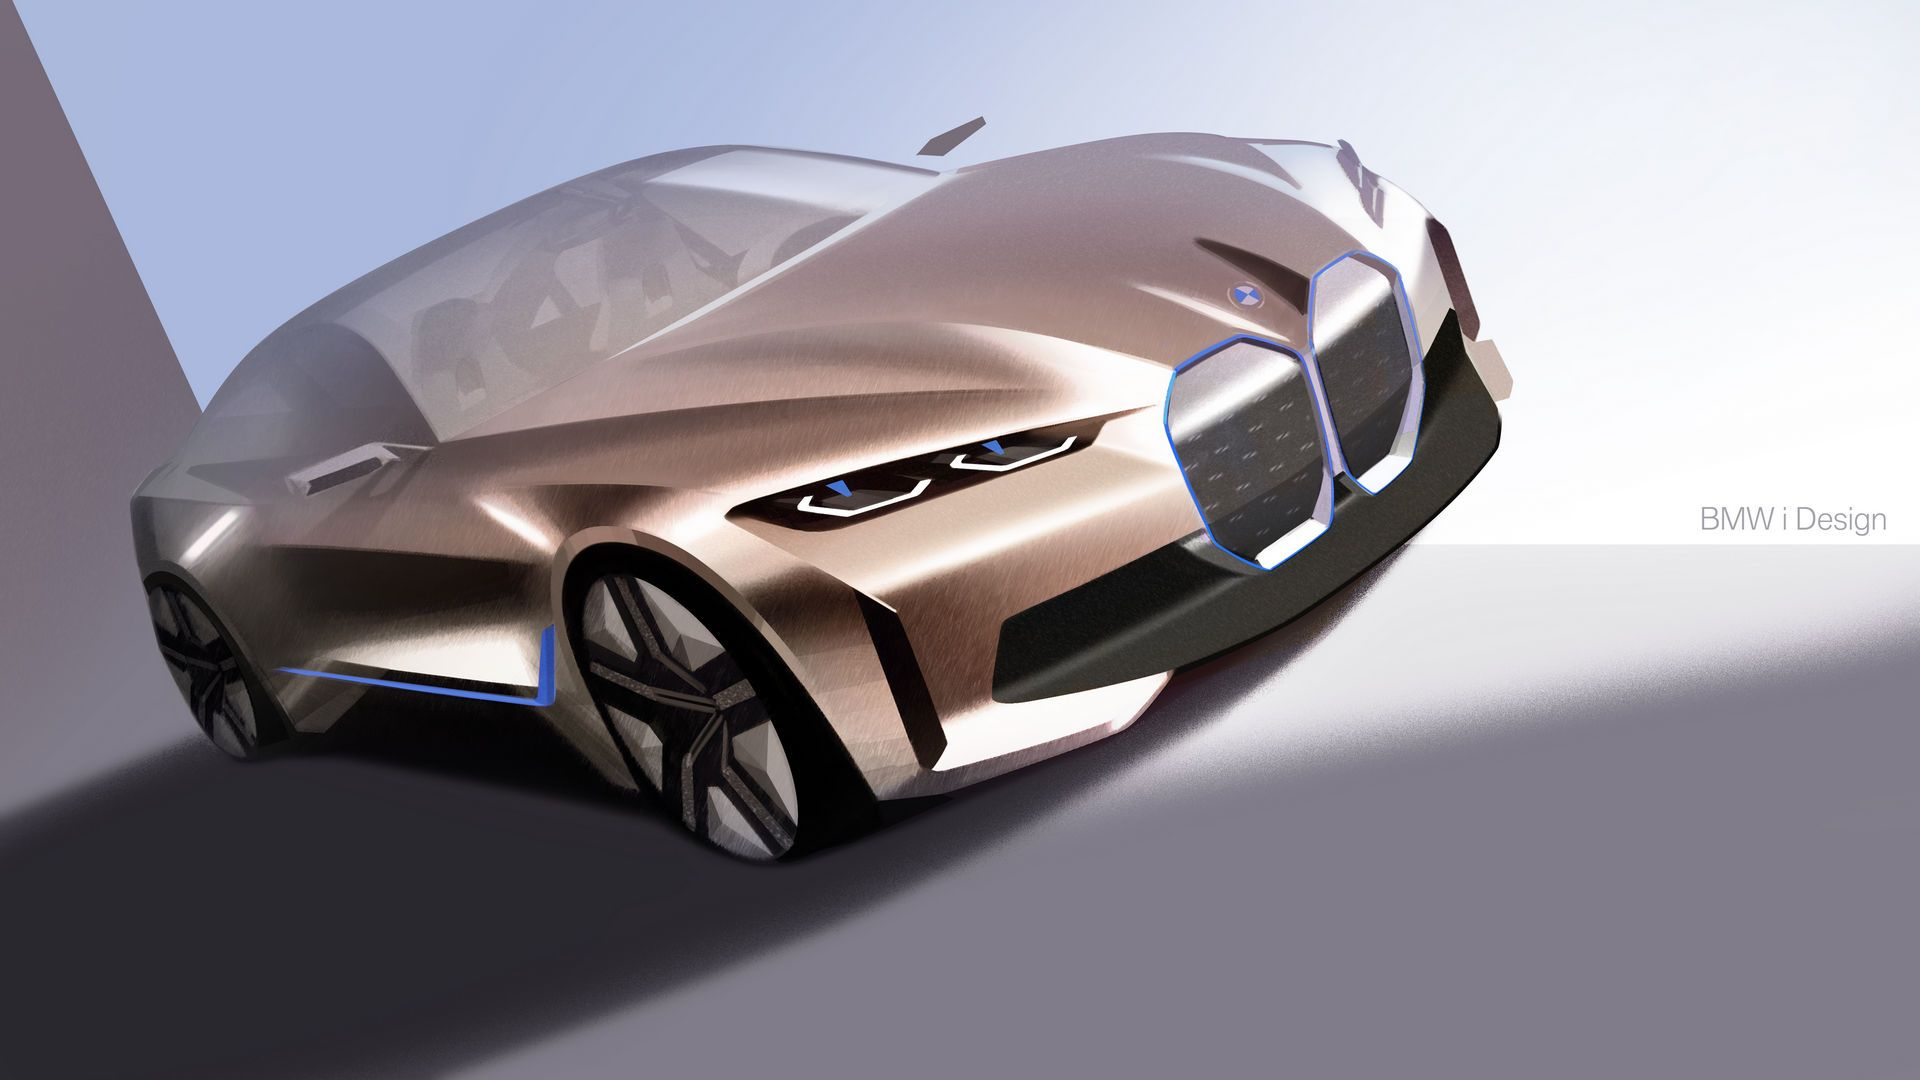 Bmw Concept I4 Previews Production Model Coming In 2021 Carscoops In 2020 Bmw Concept Bmw Design Bmw Sketch